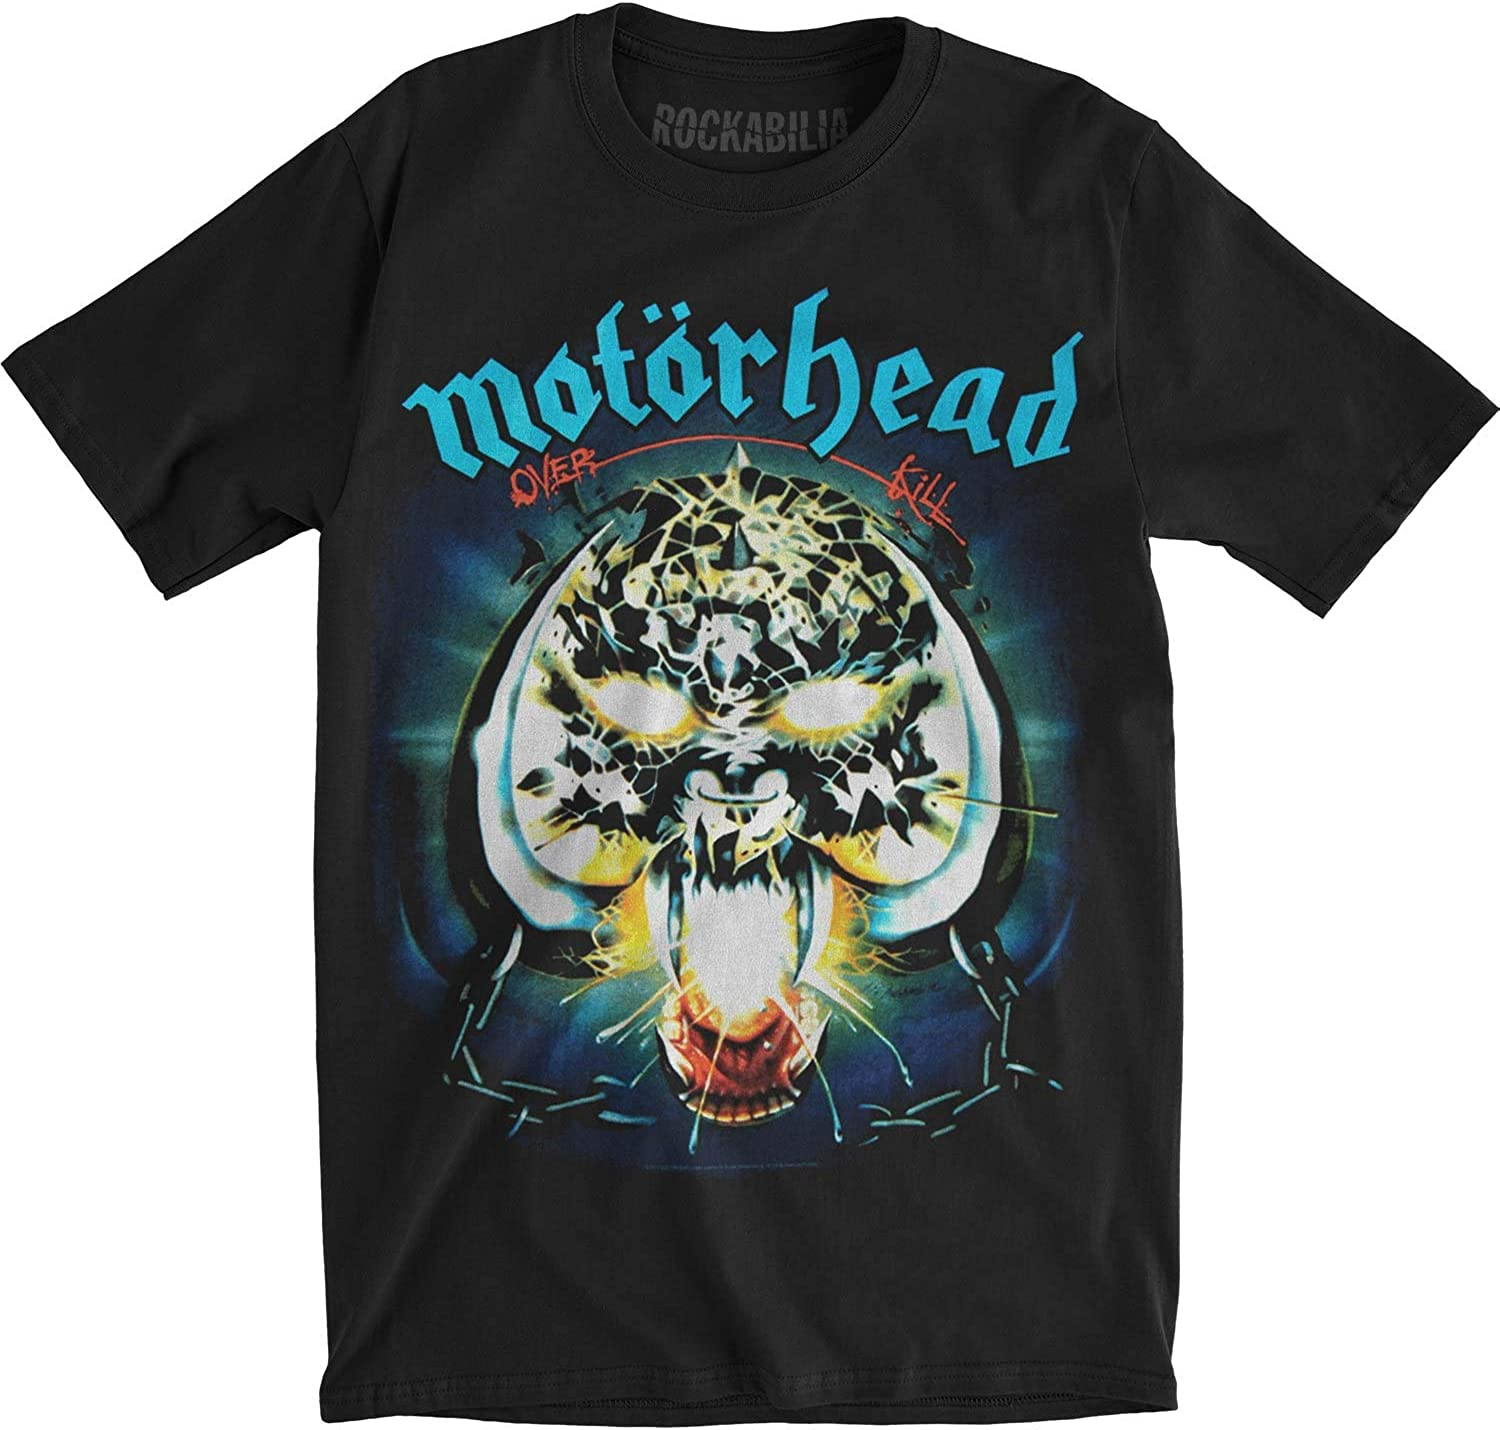 Motorhead /'Overkill/' Womens Fitted T-Shirt NEW /& OFFICIAL!